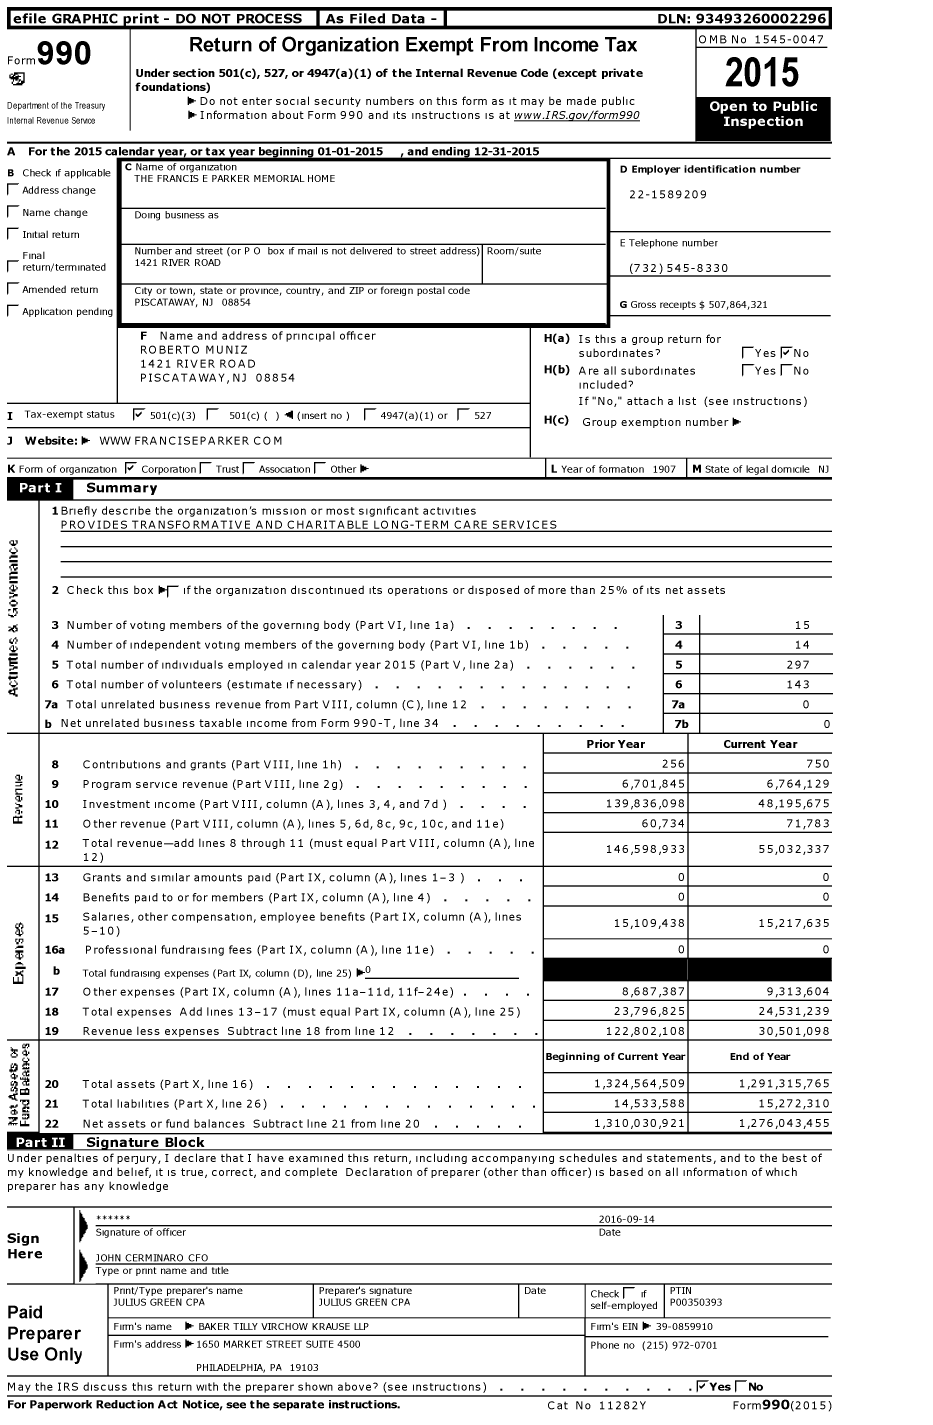 Image of first page of 2015 Form 990 for The Francis E Parker Memorial Home